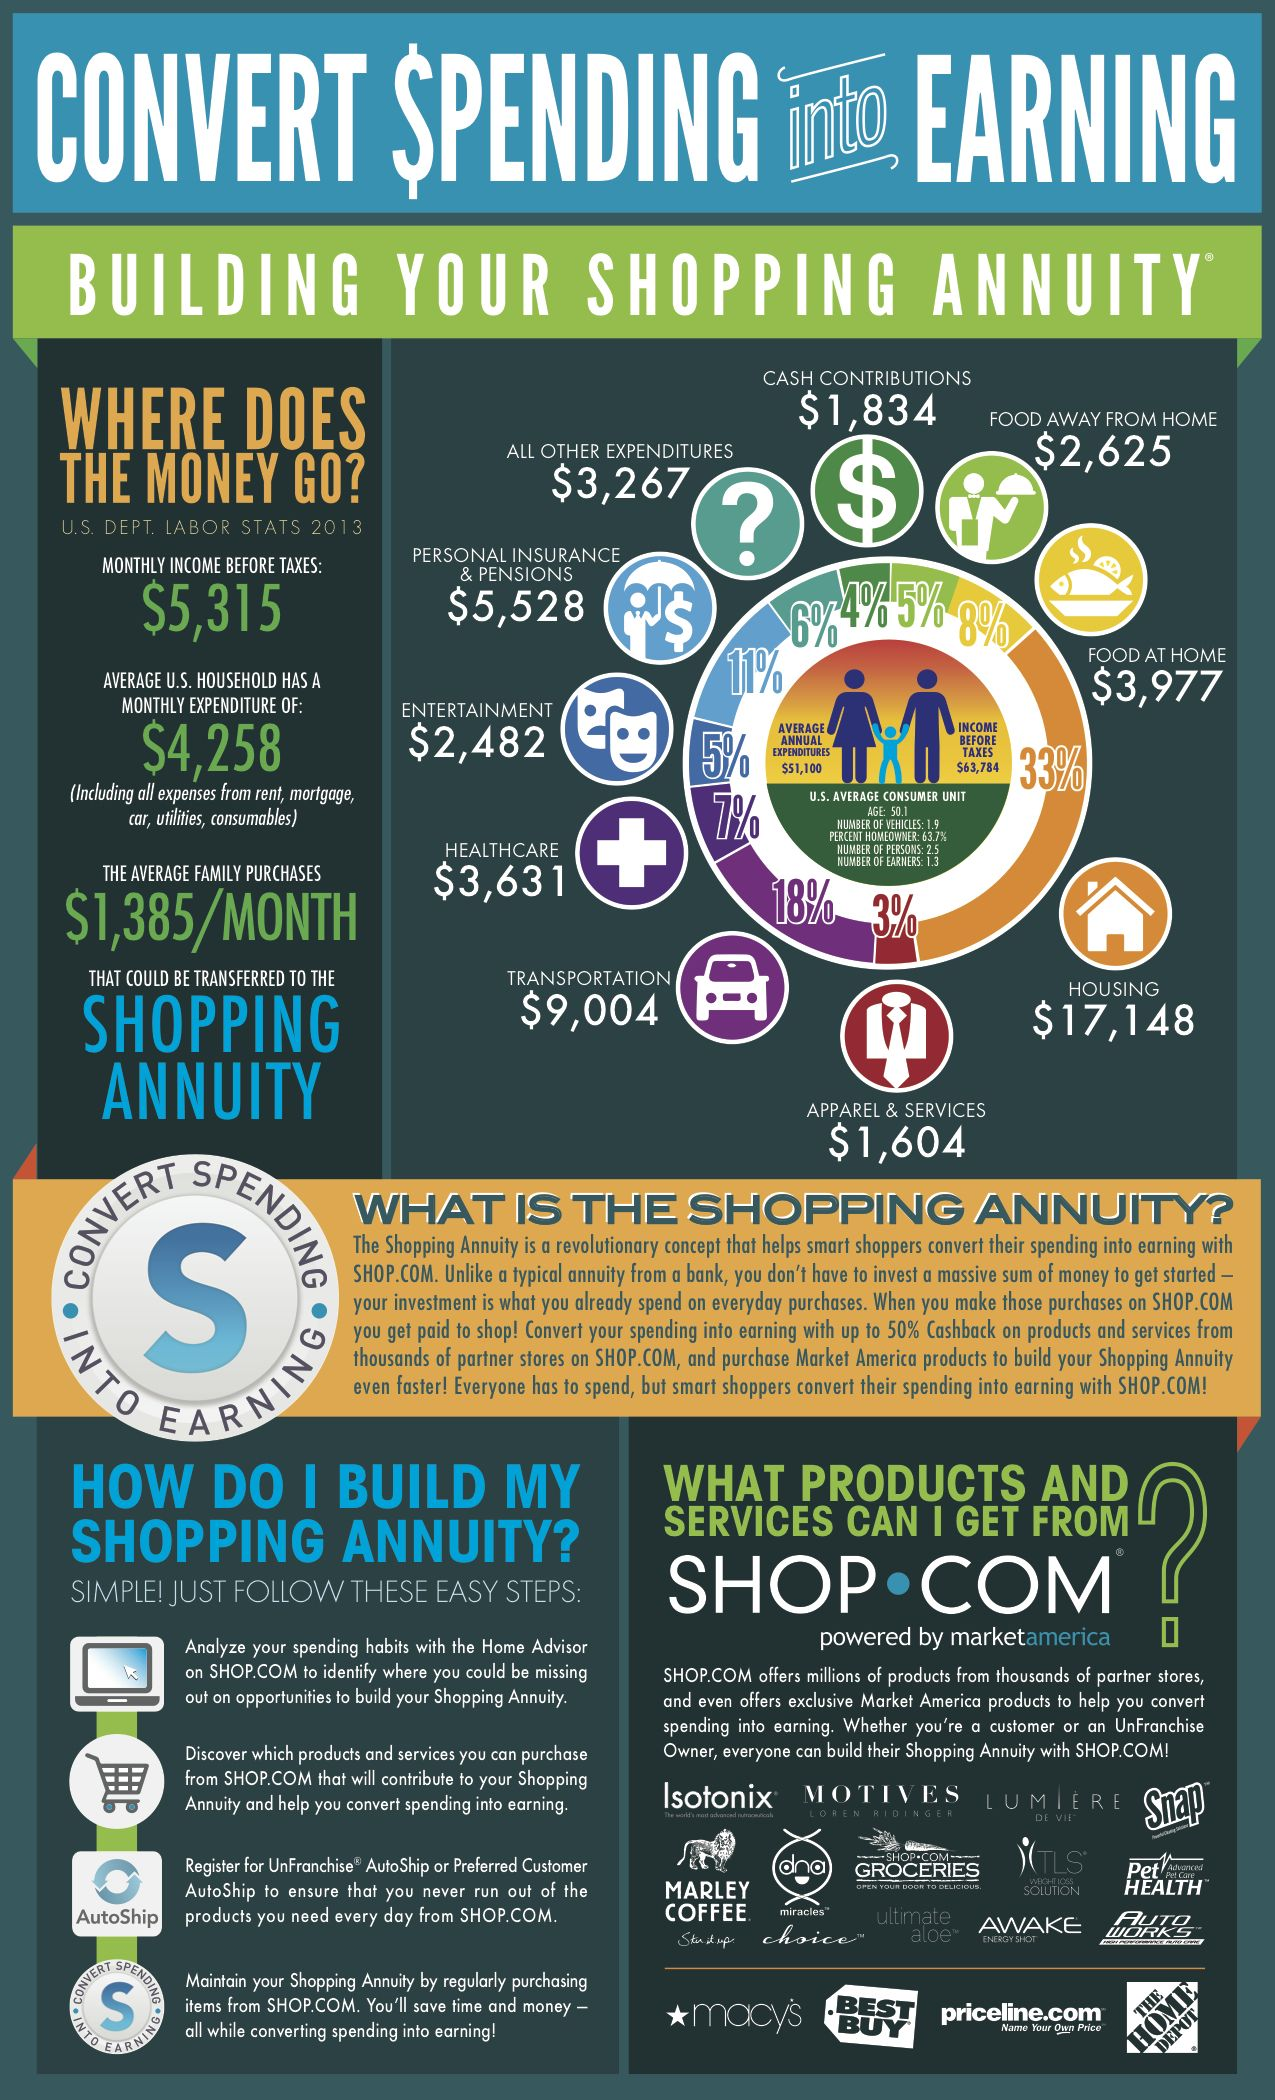 Annuity Quotes Shoppingannuity_2014 Create Your Own Shopping Annuity Program With